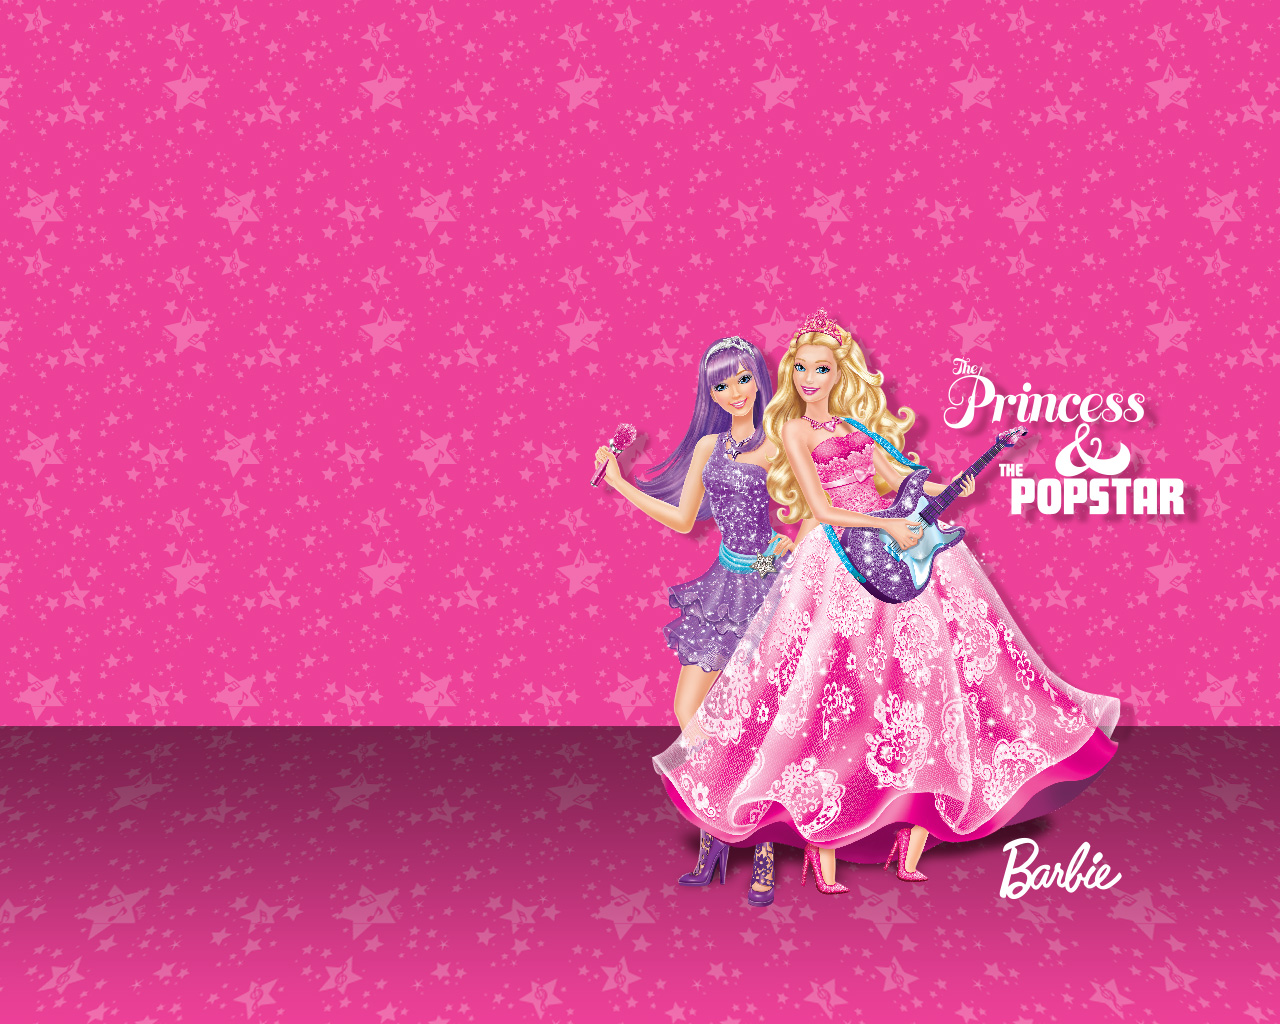 http://1.bp.blogspot.com/-FUxRHCxtWNA/ULaYCg9rNNI/AAAAAAAAAsc/r7scpiZ14Lw/s1600/PaP-wallpaper-like-thingies-barbie-movies-31370835-1280-1024.jpg